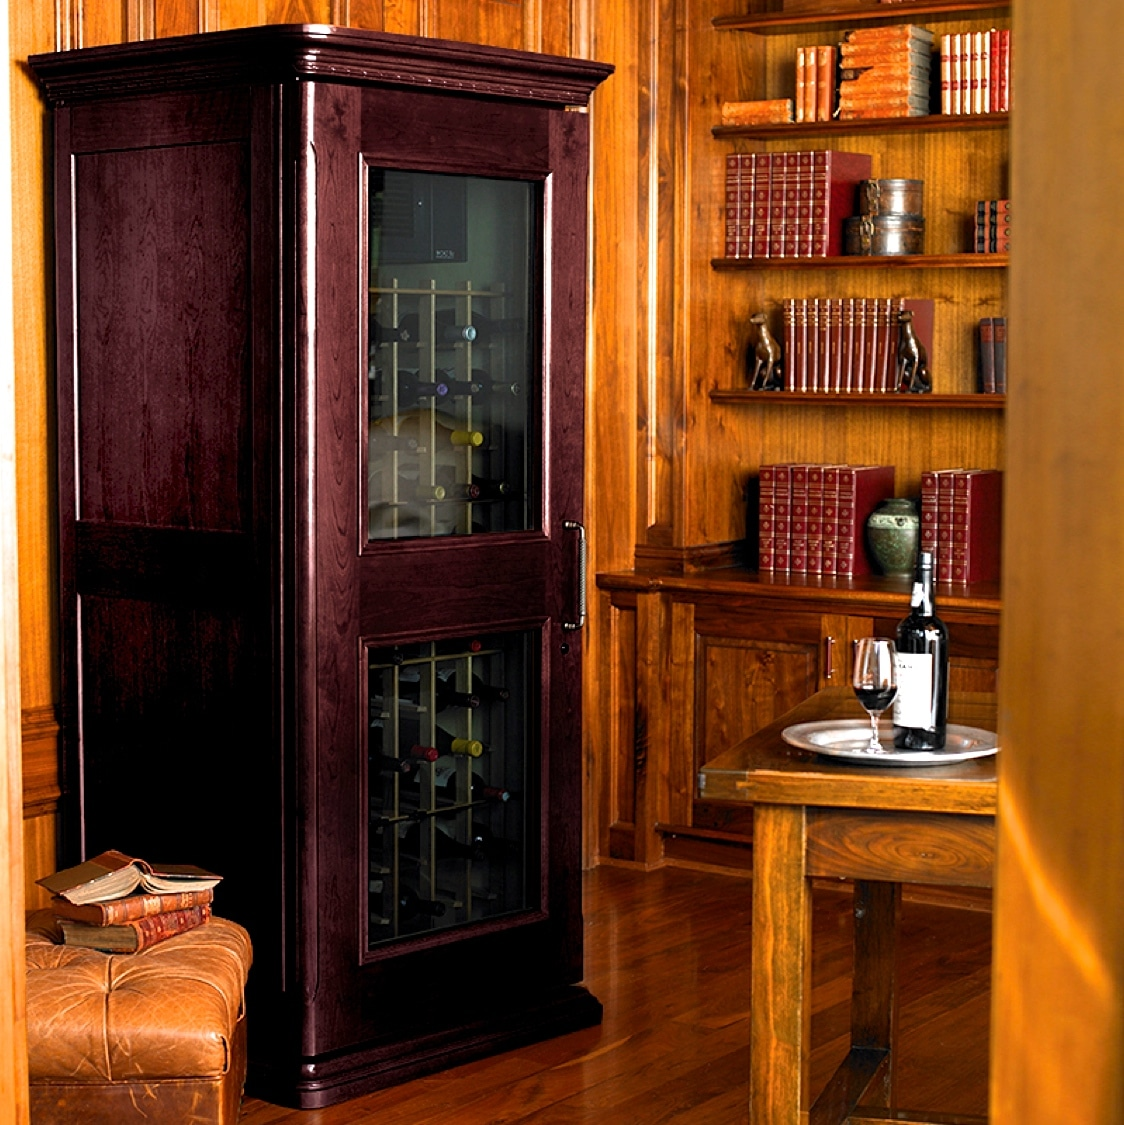 3. Le Cache Euro 1400 Wine Cabinet Chocolate Cherry, #758